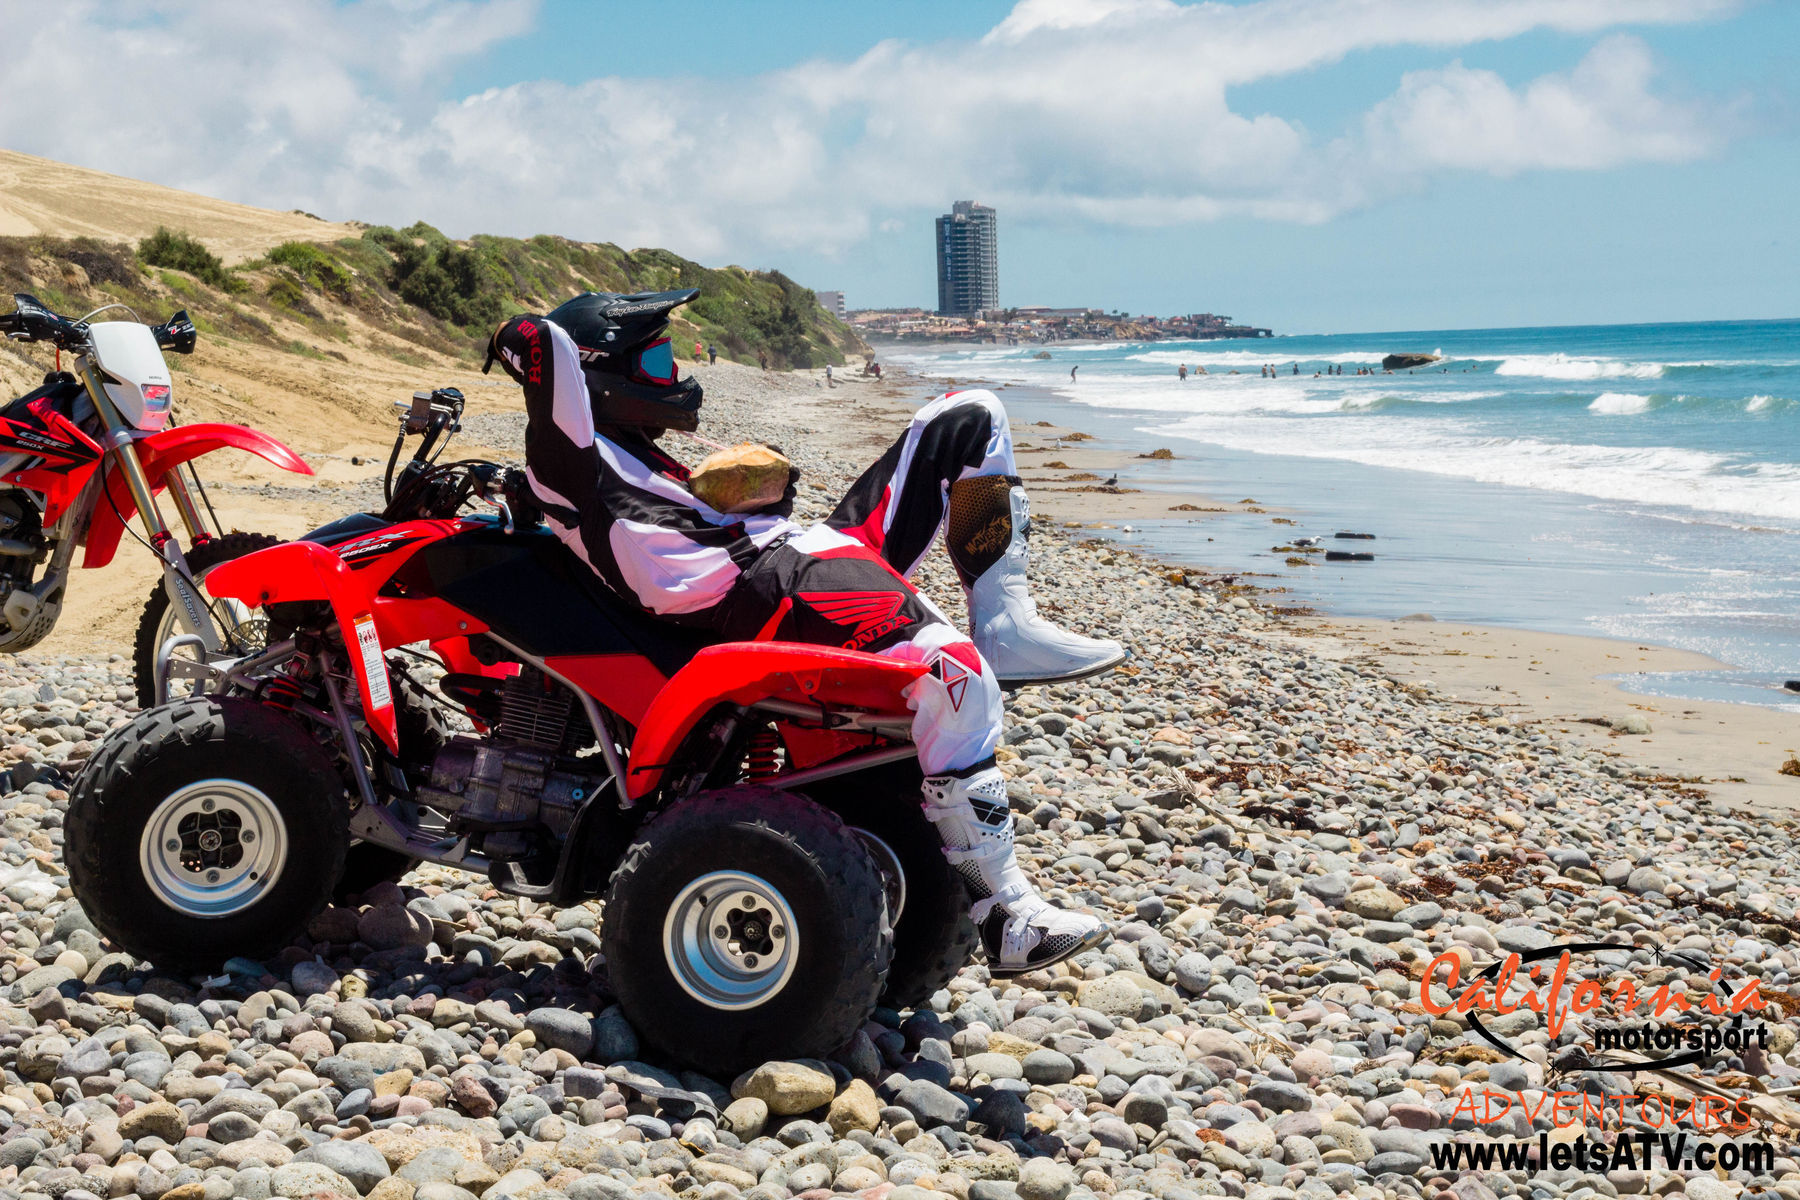 2007 Honda  | TRX 250 makes a good spot for spring break relaxing